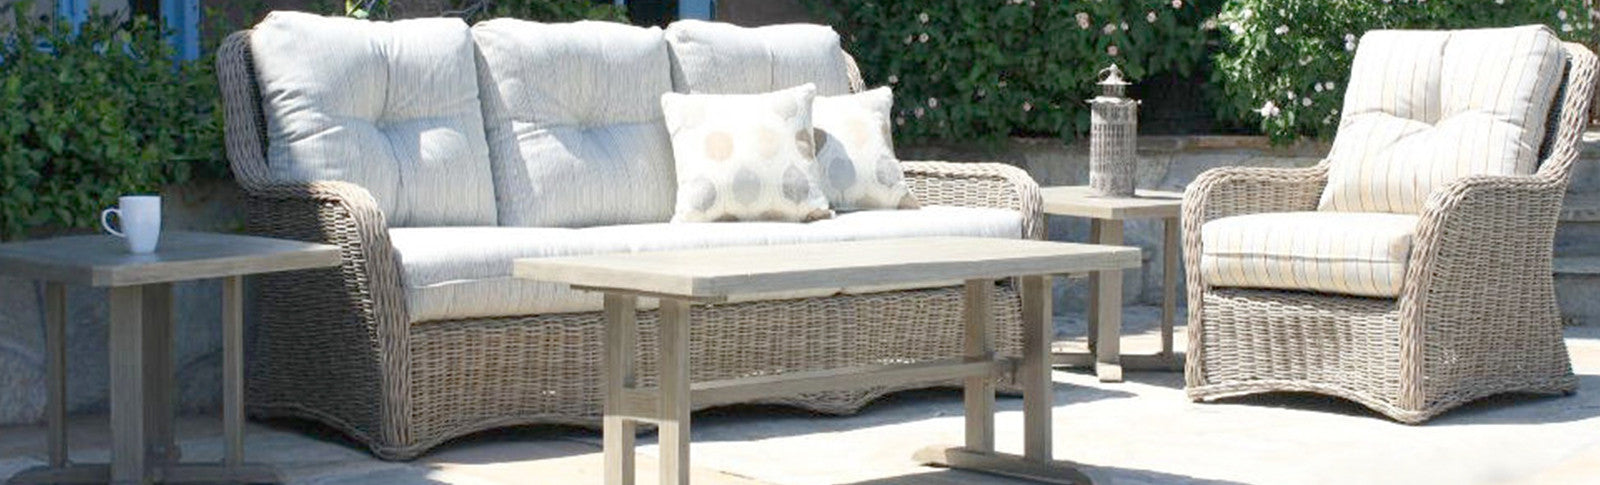 Patio Furniture Sale Items